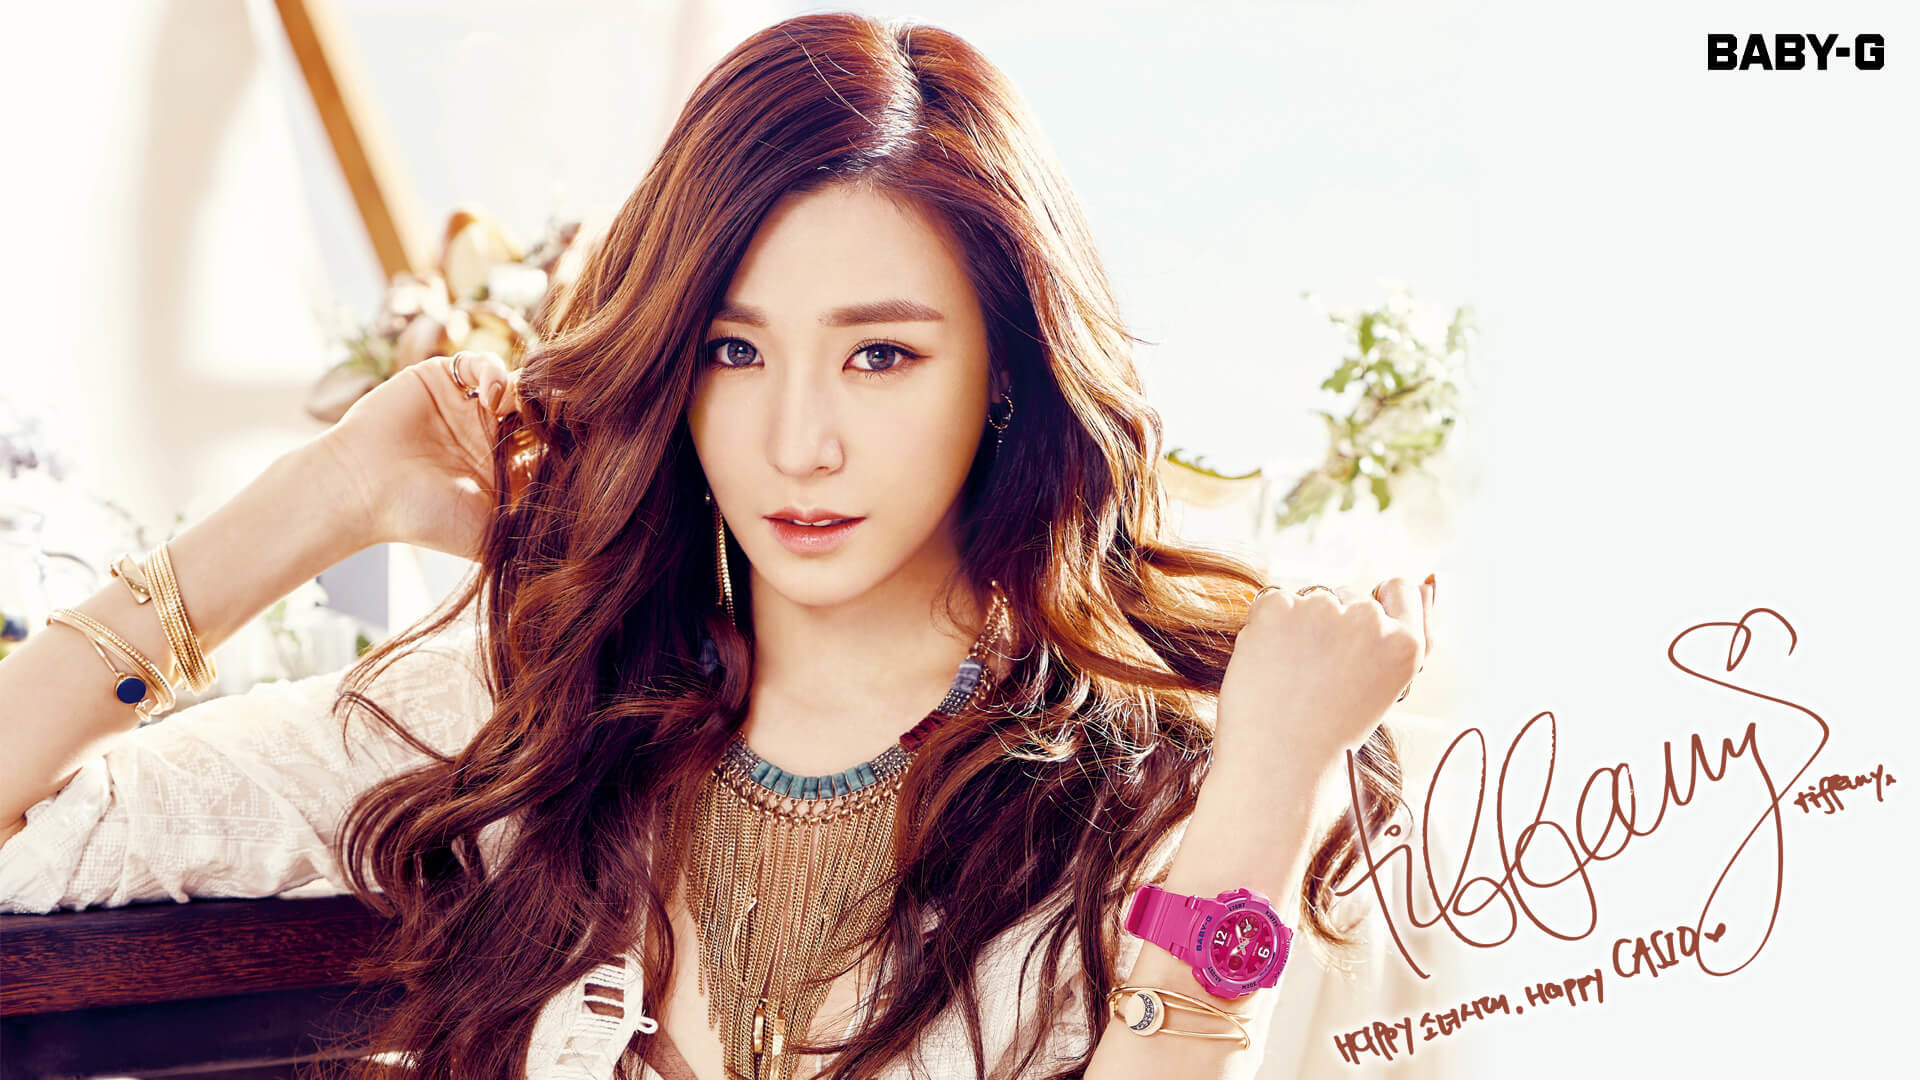 Res: 1920x1080, Girls Generation Casio Baby-G Summer 2016 Wallpaper Tiffany